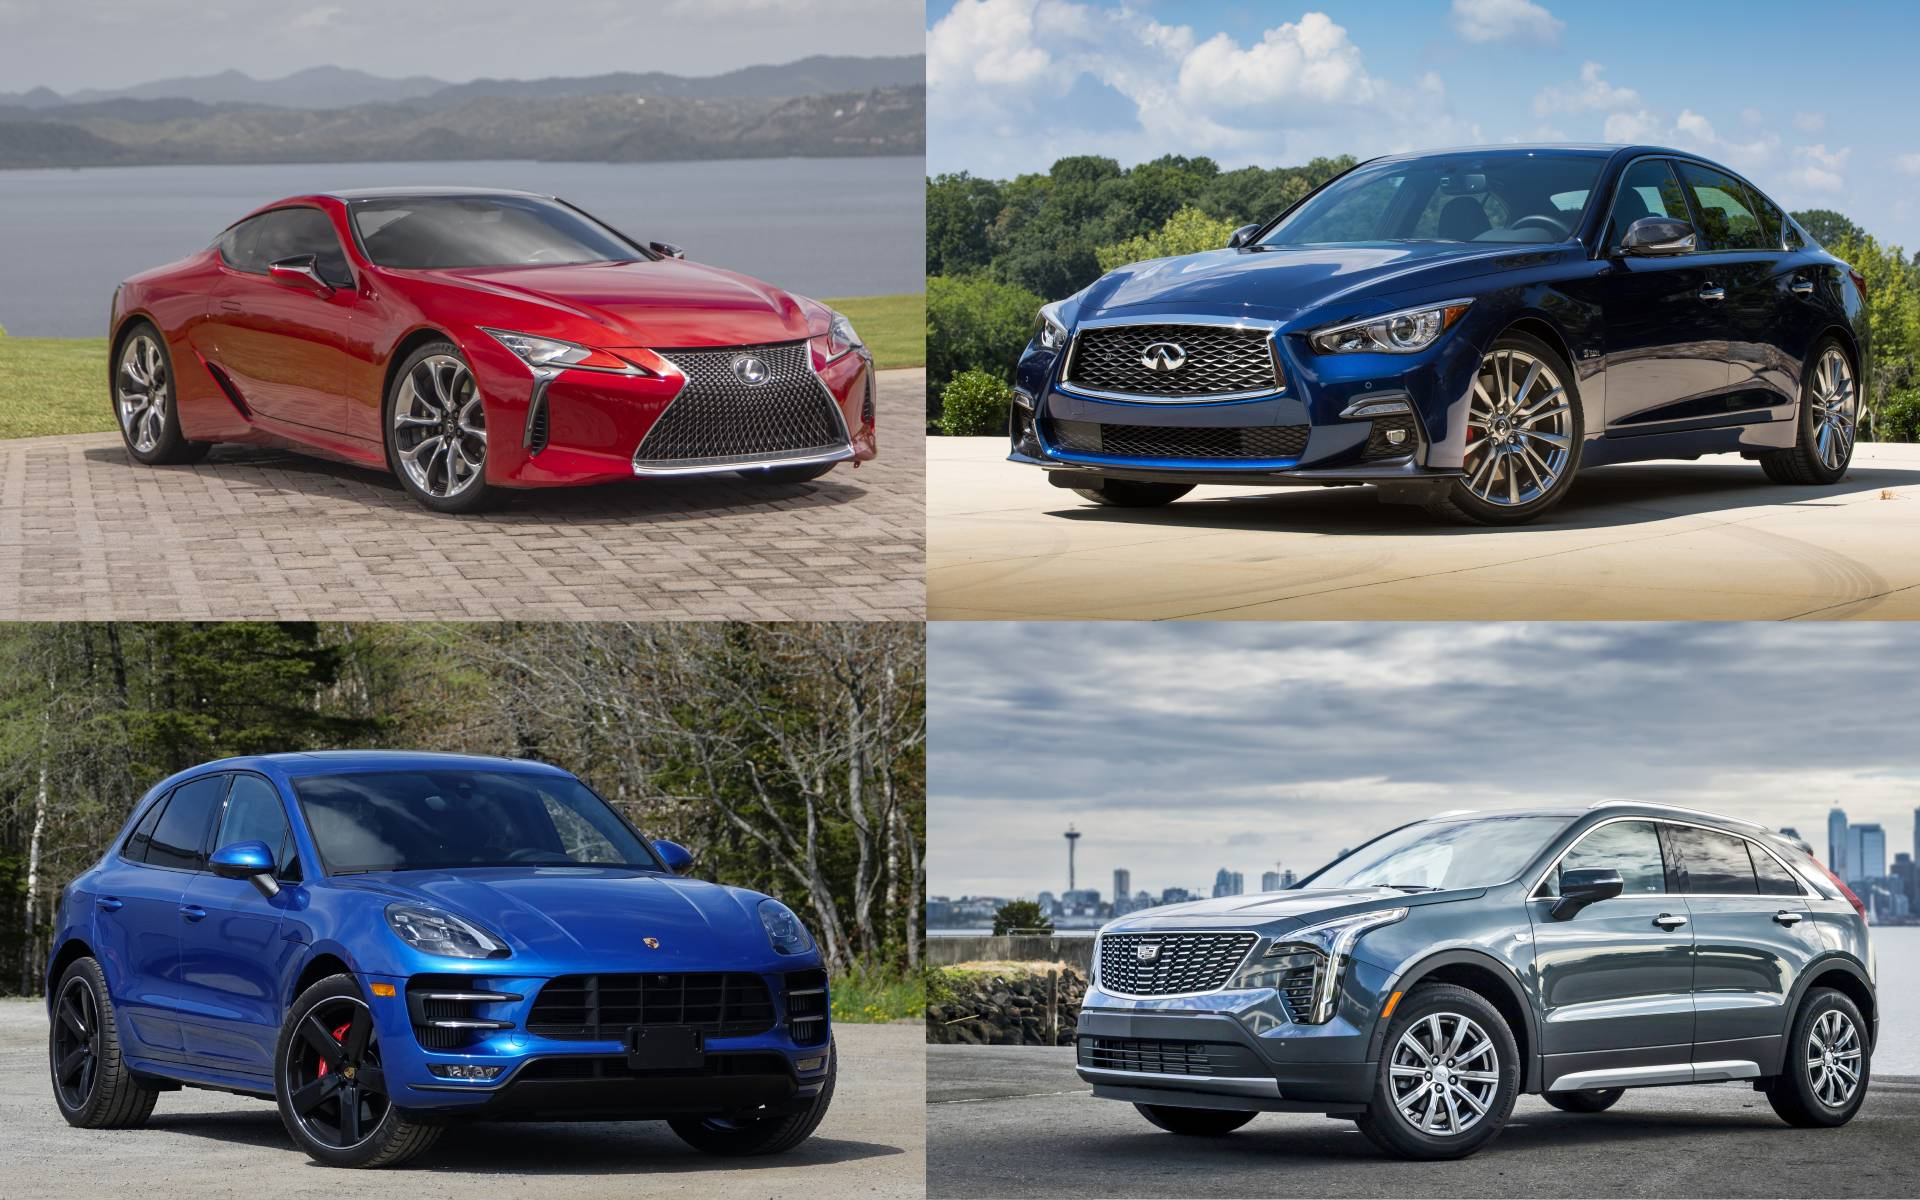 Top 10 Car Brands For Customer Service In 2020 According To J D Power 1 11